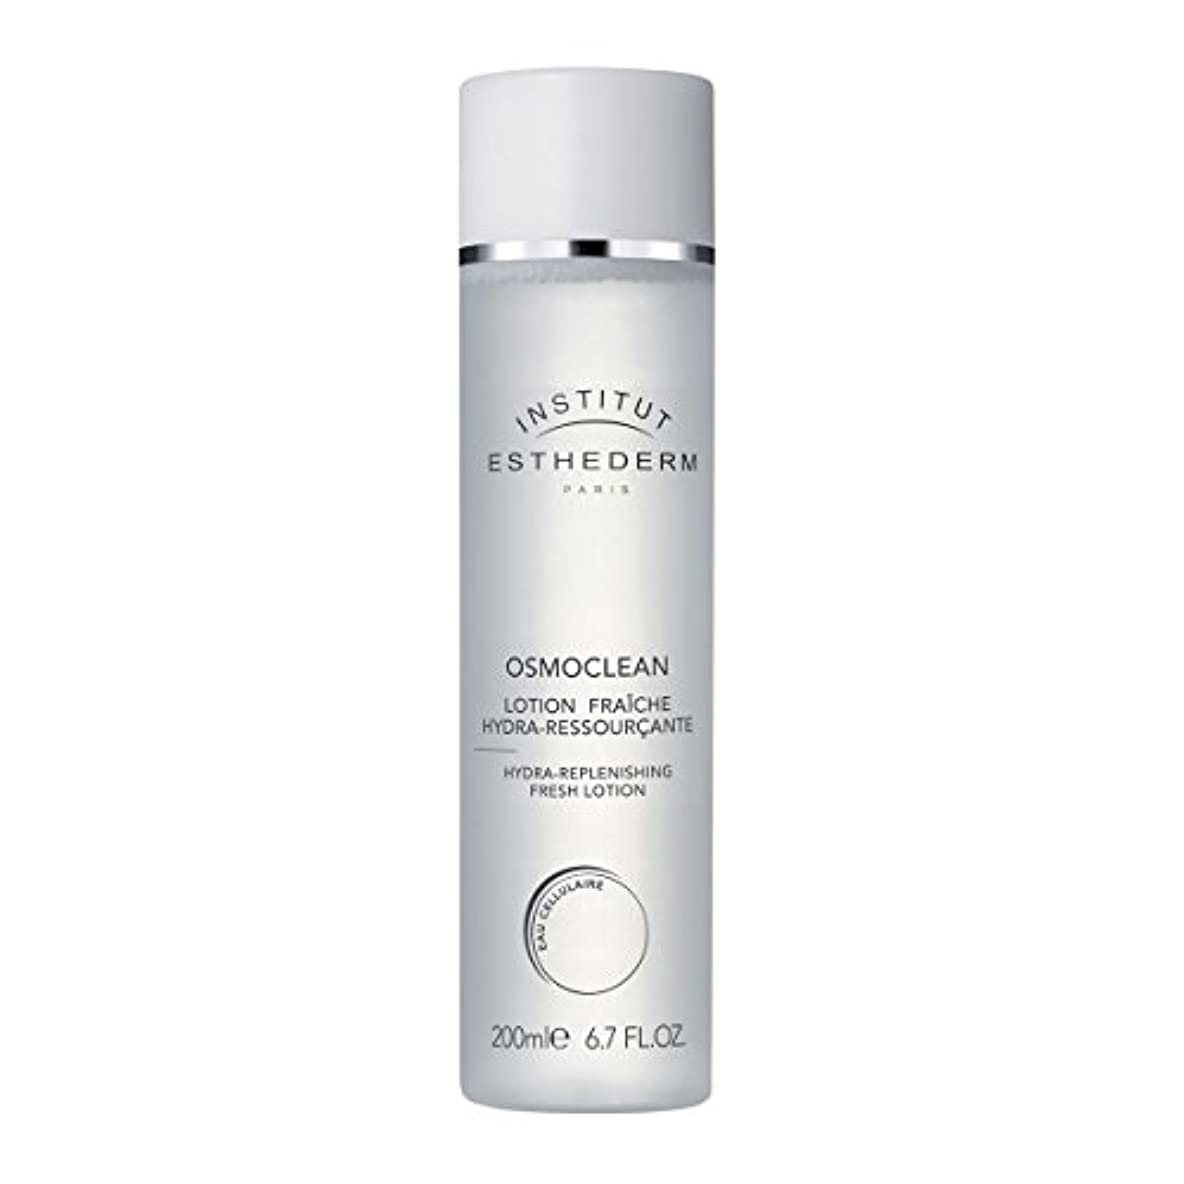 Institut Esthederm Osmoclean Hydra-replenishing Fresh Lotion 200ml [並行輸入品]